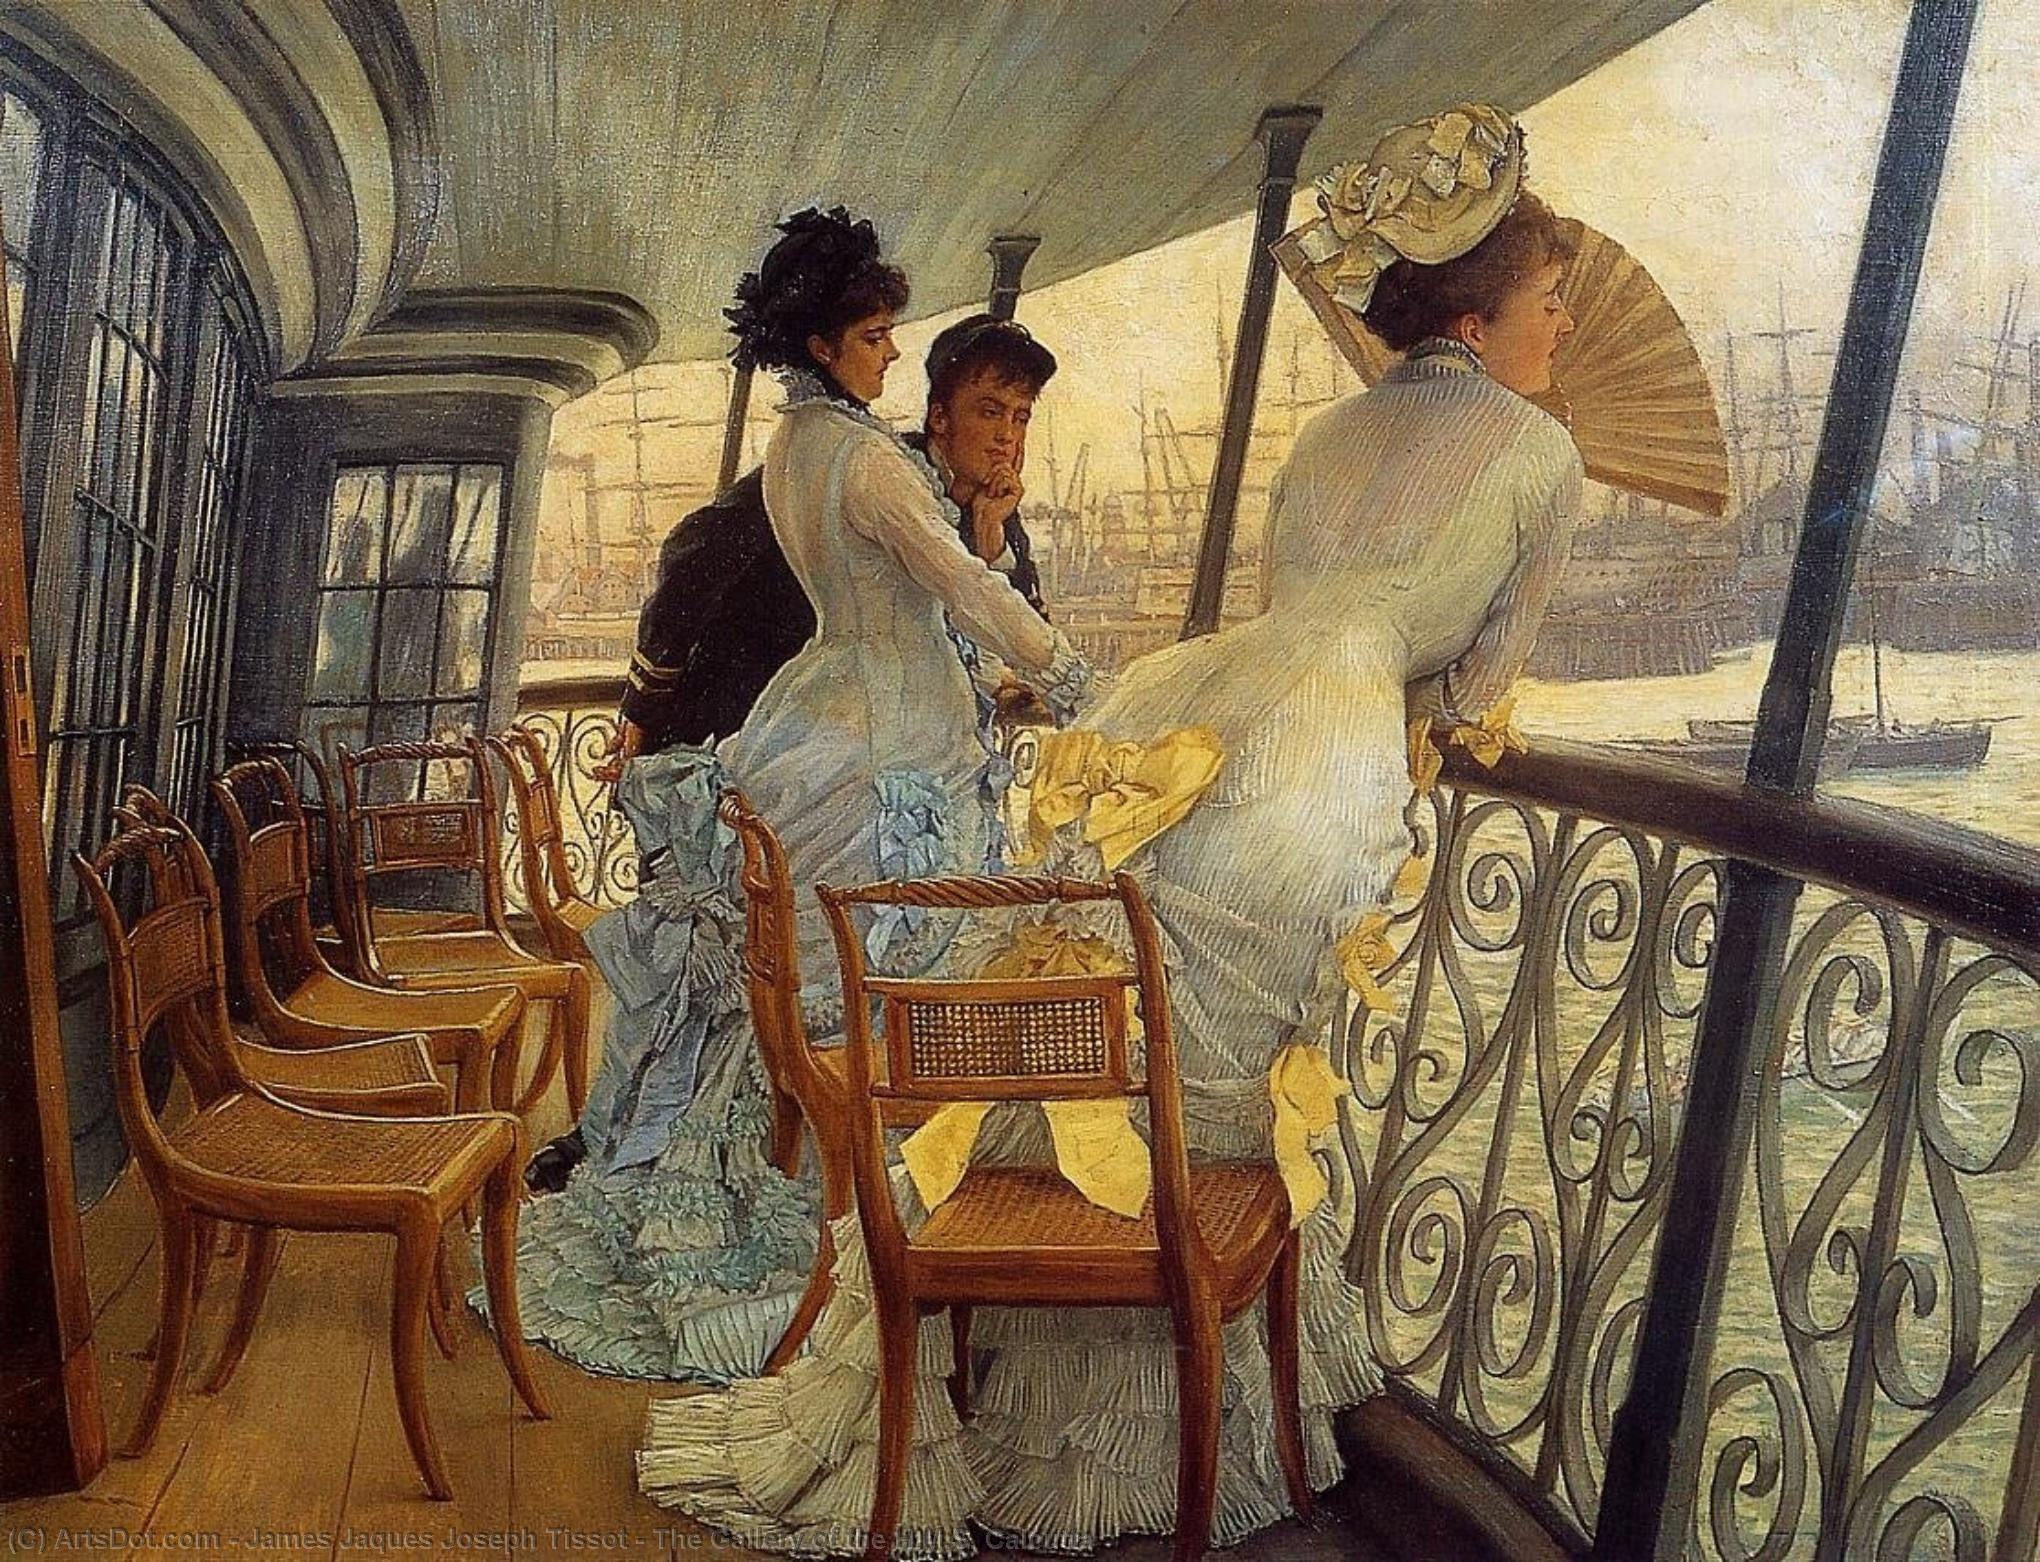 The Gallery of the H.M.S. Calcutta, 1877 by James Jaques Joseph Tissot (1836-1902, France) | Museum Art Reproductions James Jaques Joseph Tissot | ArtsDot.com